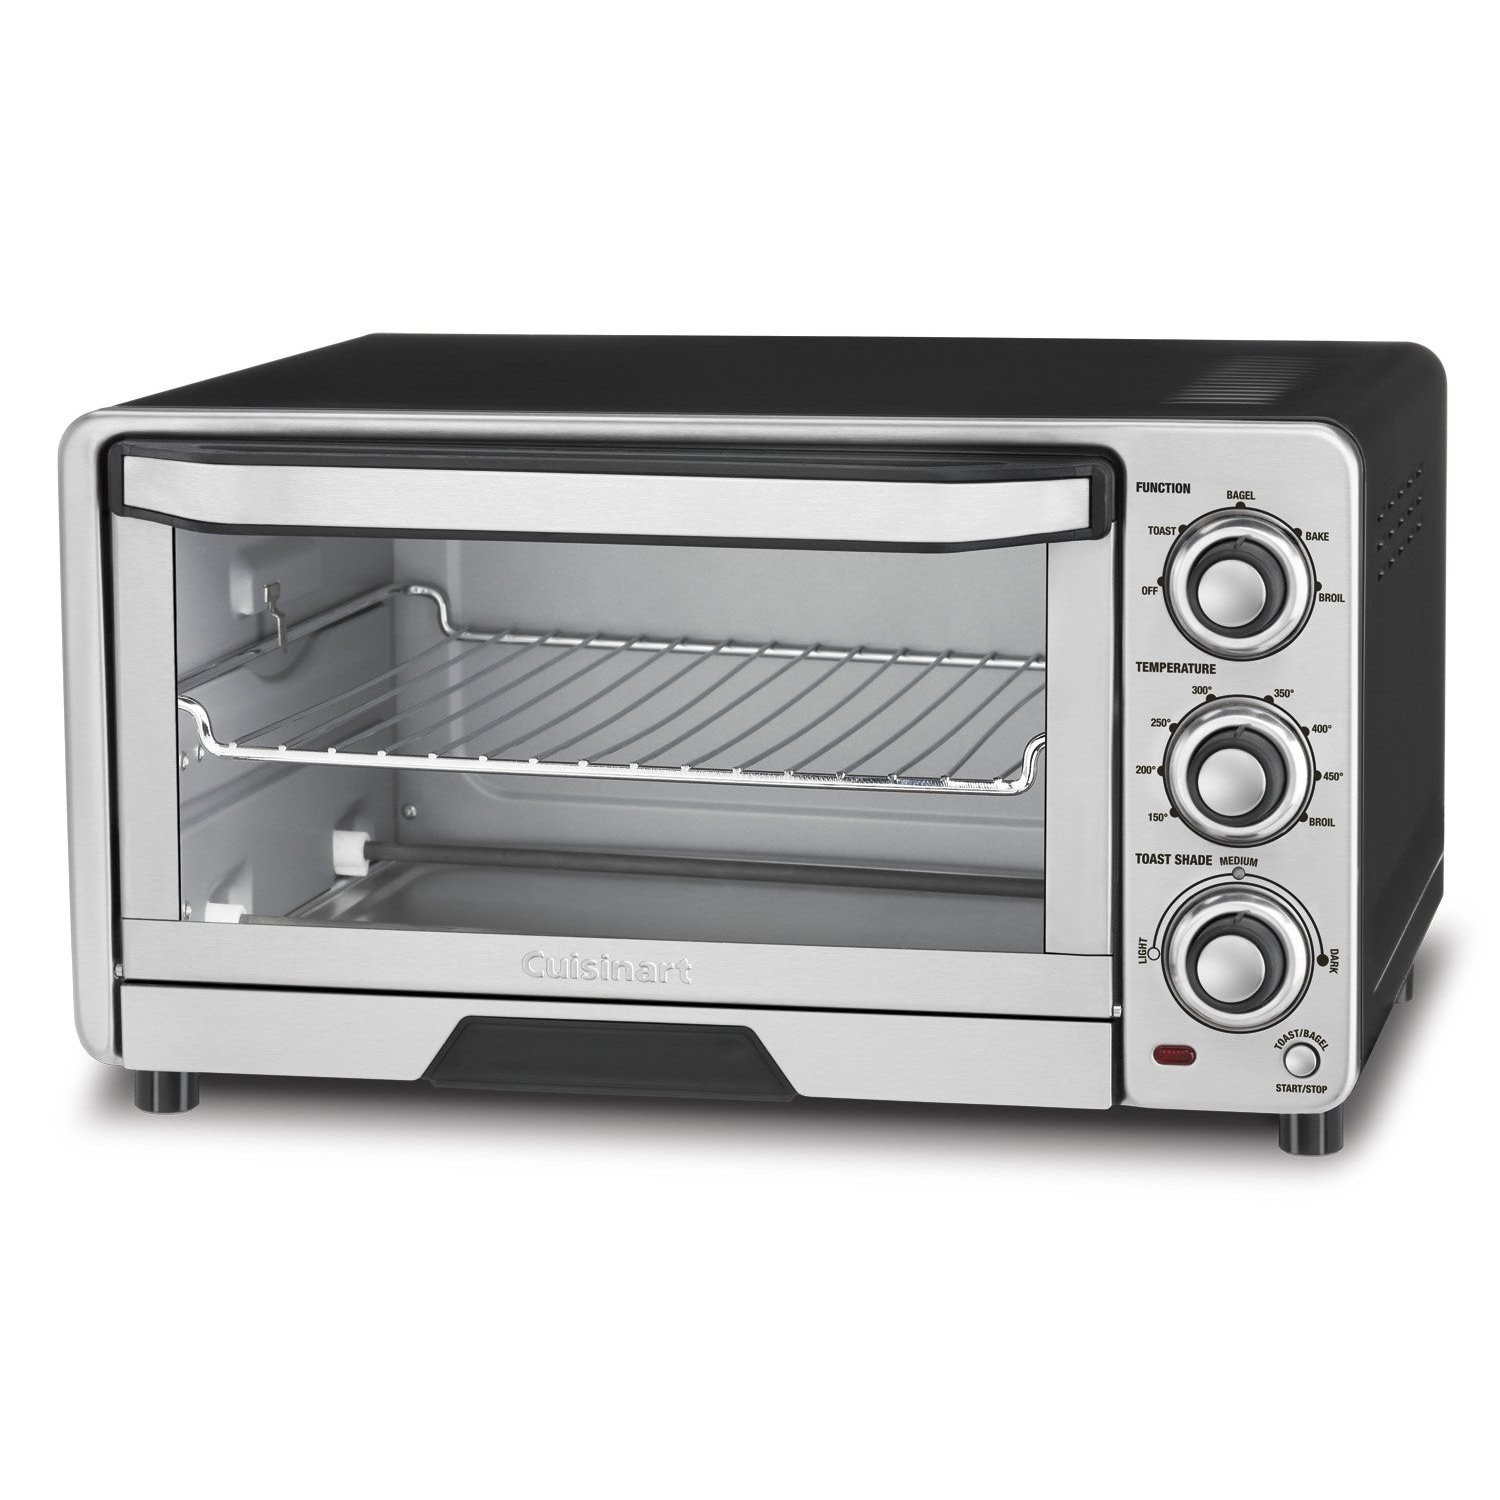 black review reviews capacity oven toaster best slice waring tags decker the